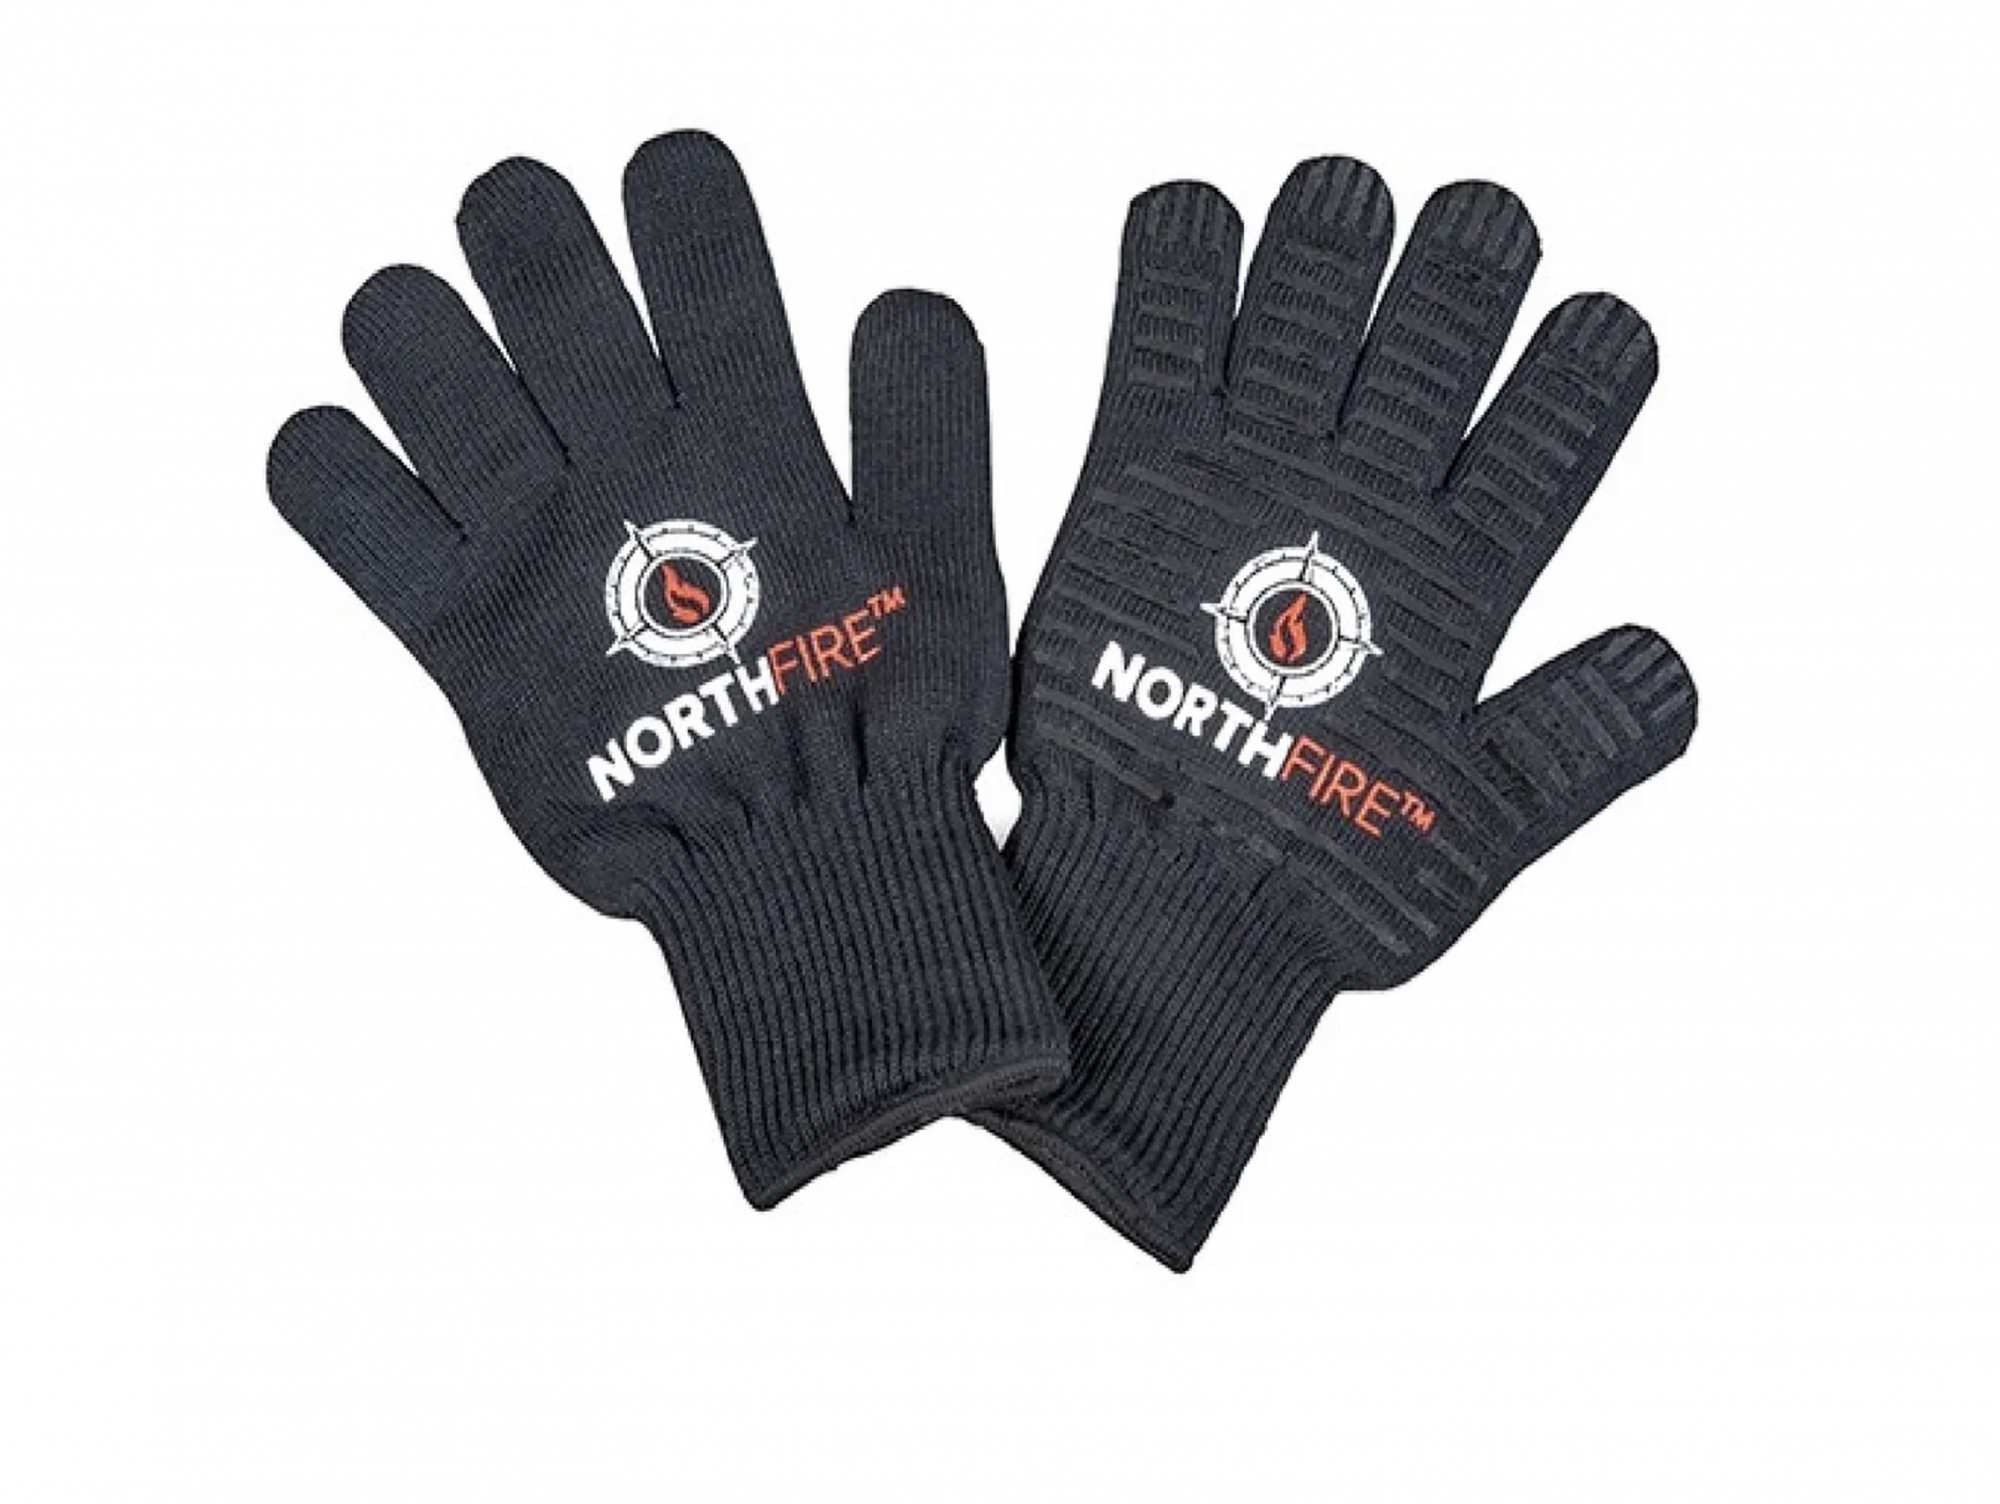 A good pair of grilling gloves will allow your favorite grilling guru to brave the heat without fear of burning. Don this thick cotton pair, and they can adjust grates, pick up hot pans, and even maneuver logs or coals. These heat-resistant gloves can protect hands from temperatures of up to 932 degrees and because of the glove design and grippy surface, they're better than mitts for getting a good hold on something.